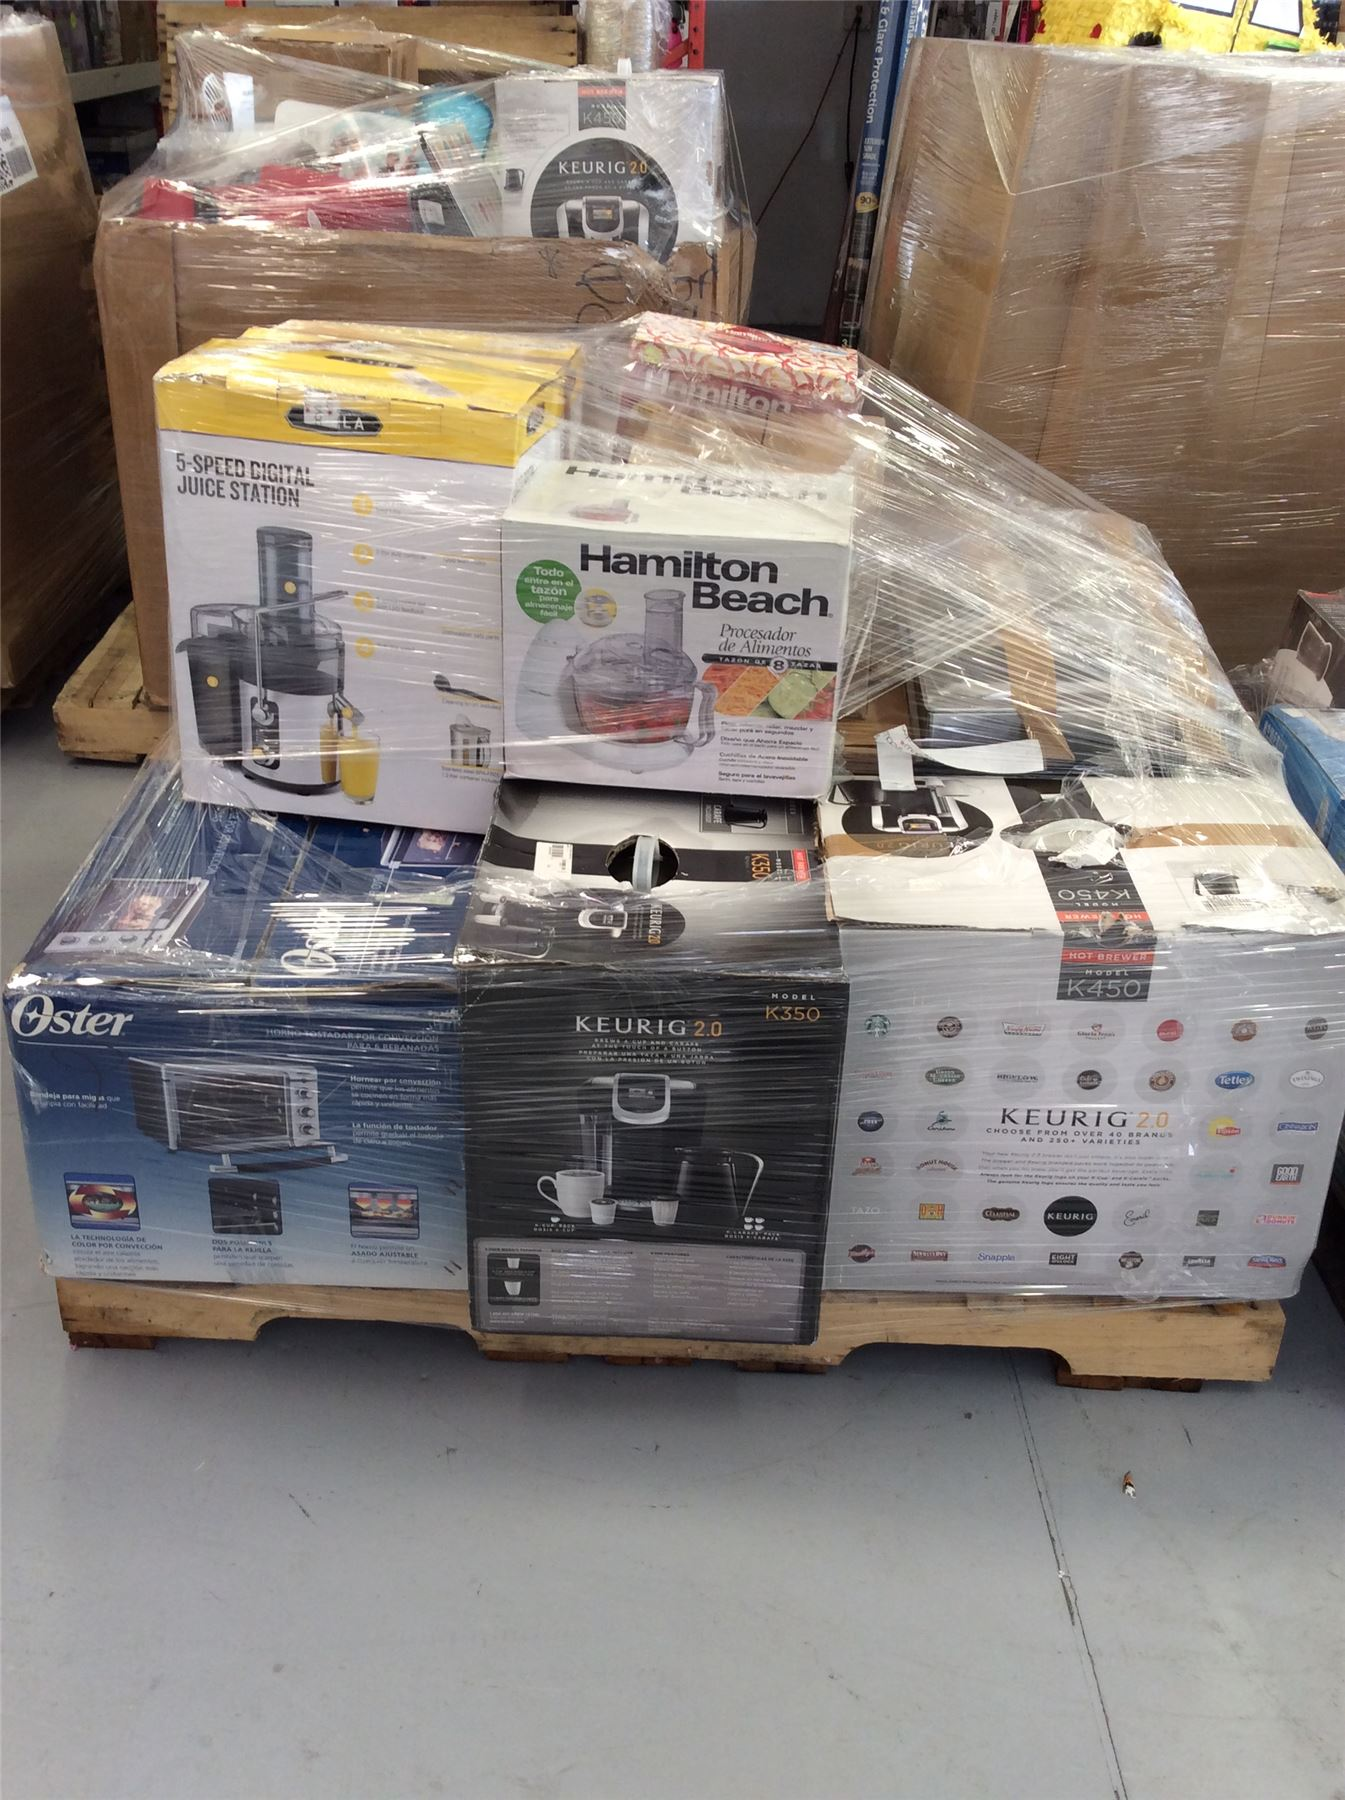 Uncategorized Kitchen Appliance Wholesalers db151321 8ac5 4b42 8fd3 6c25c010dc88 jpg what are customer returns